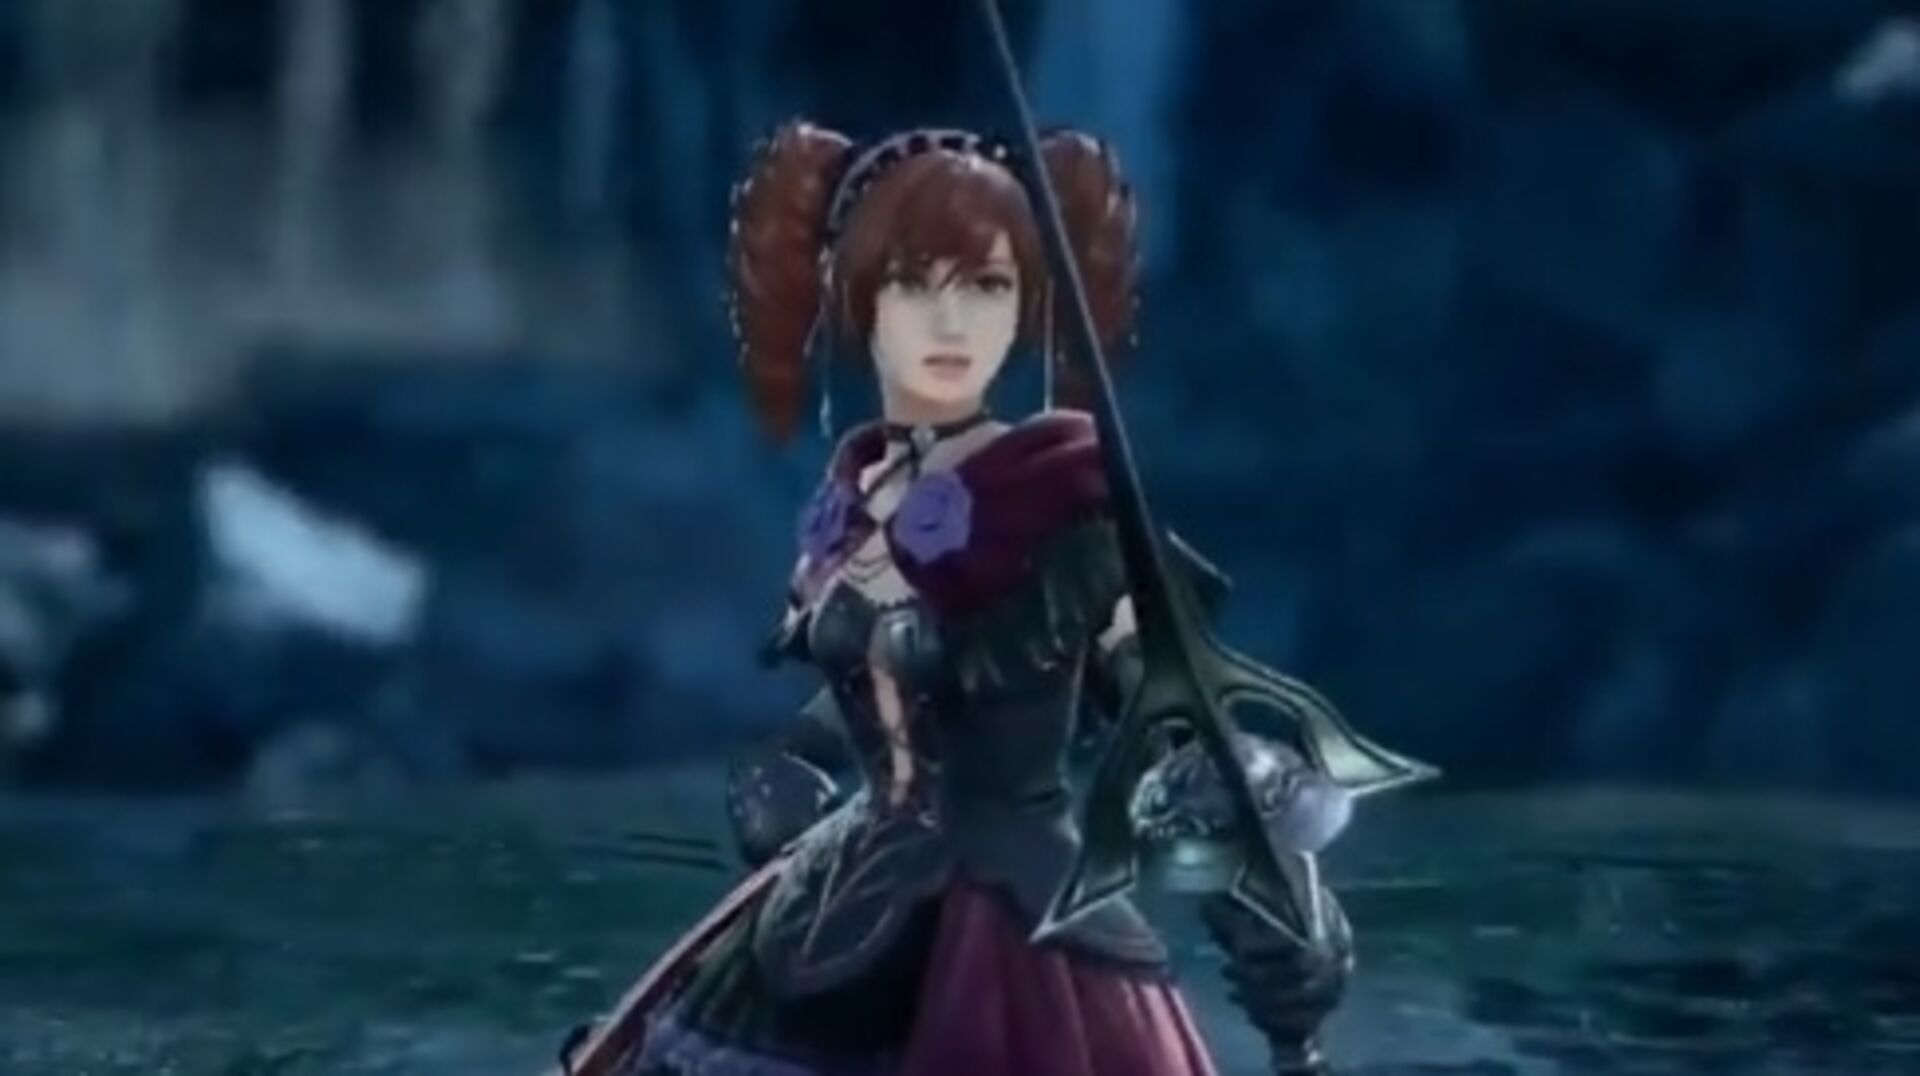 Amy Is The Next Dlc Character For Soulcalibur 6 Eurogamer Net